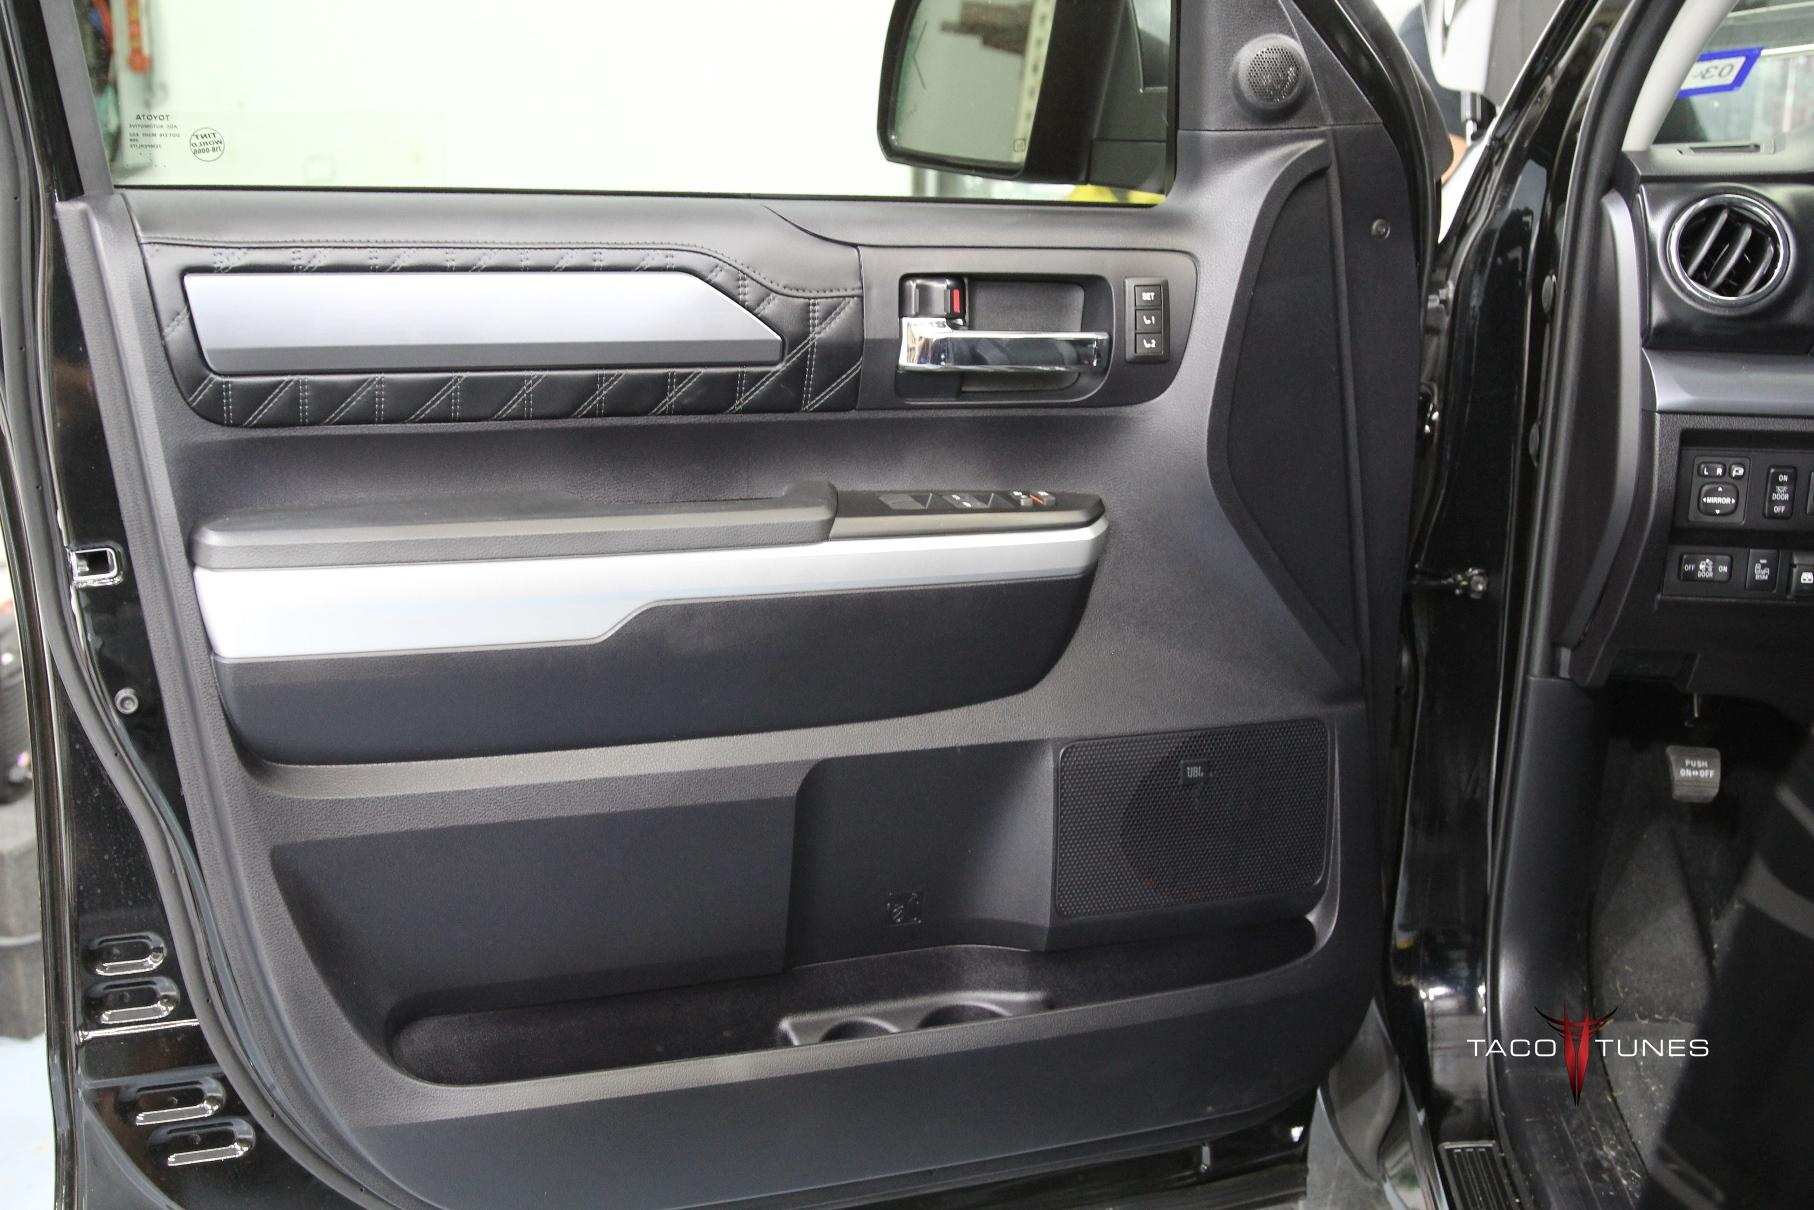 toyota tundra crewmax front door jbl equippped taco tunes toyota audio solutions. Black Bedroom Furniture Sets. Home Design Ideas